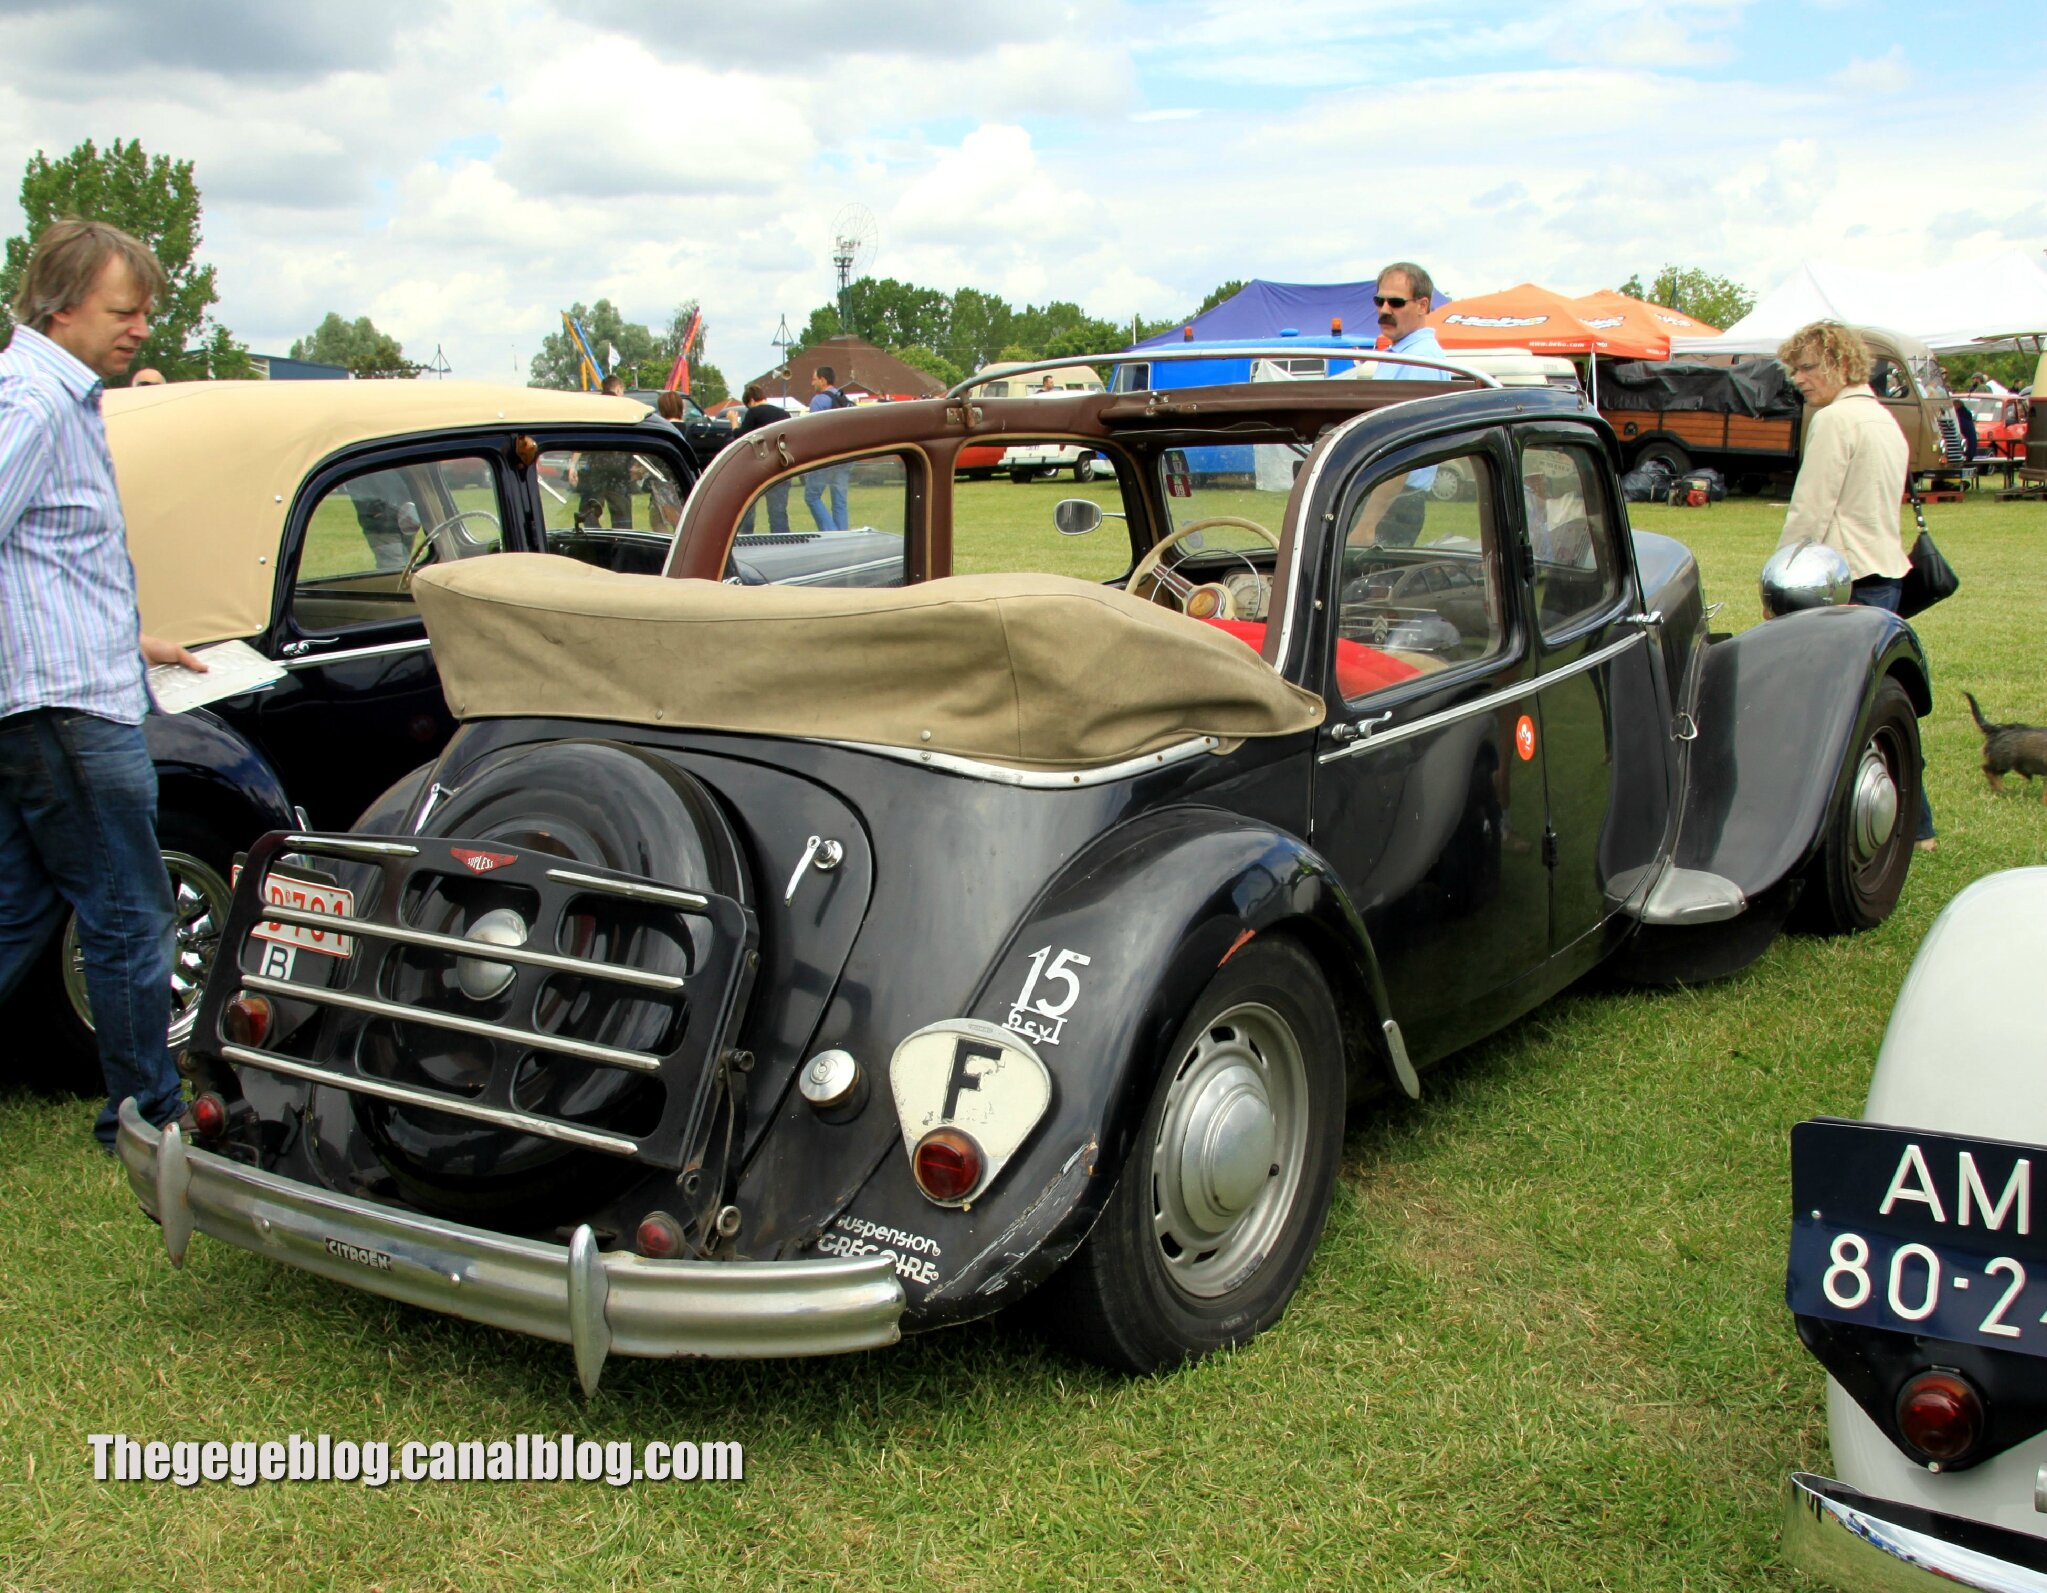 citroen traction 15 6 d couvrable retro meus auto madine 2012 the g g blog. Black Bedroom Furniture Sets. Home Design Ideas